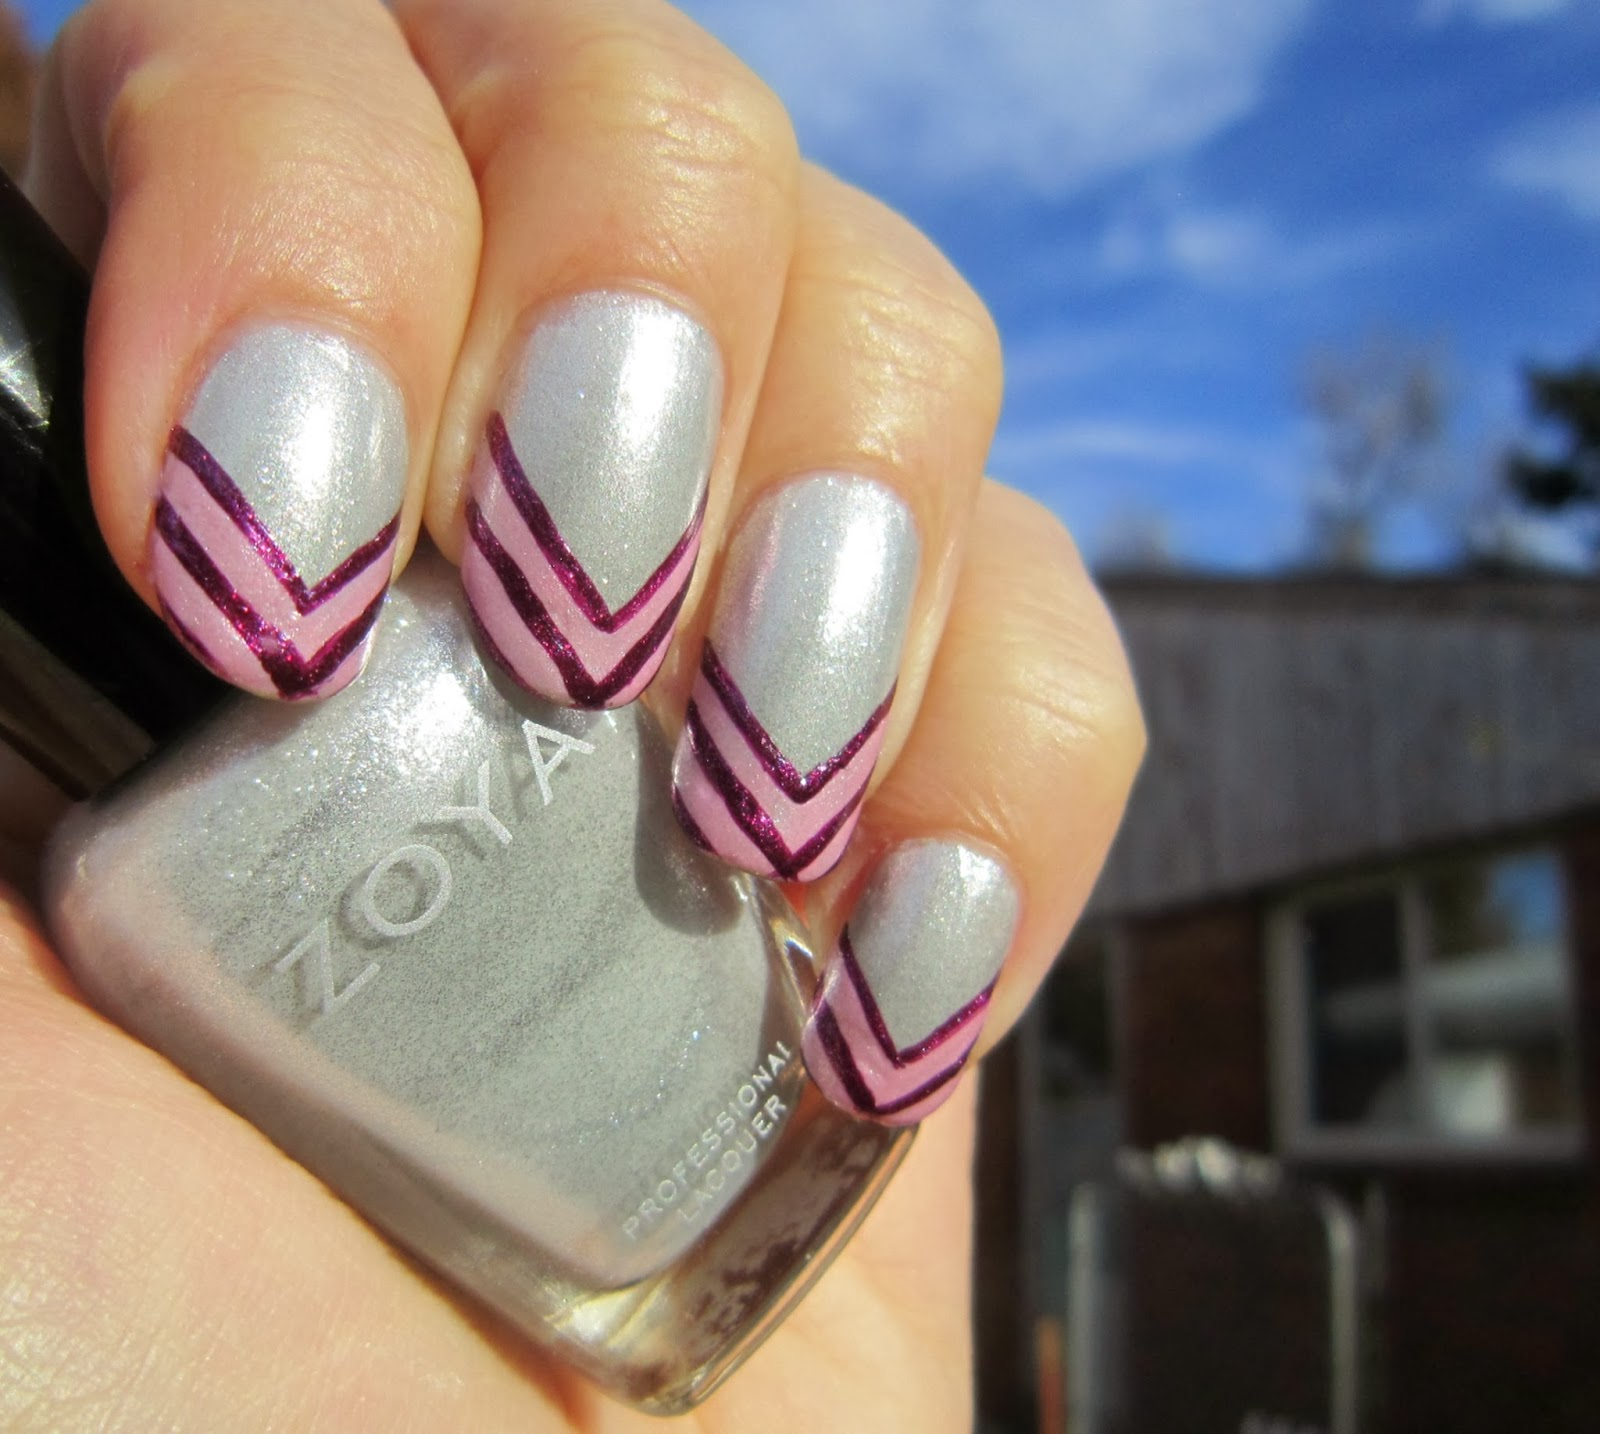 Concrete and Nail Polish: French Manicure